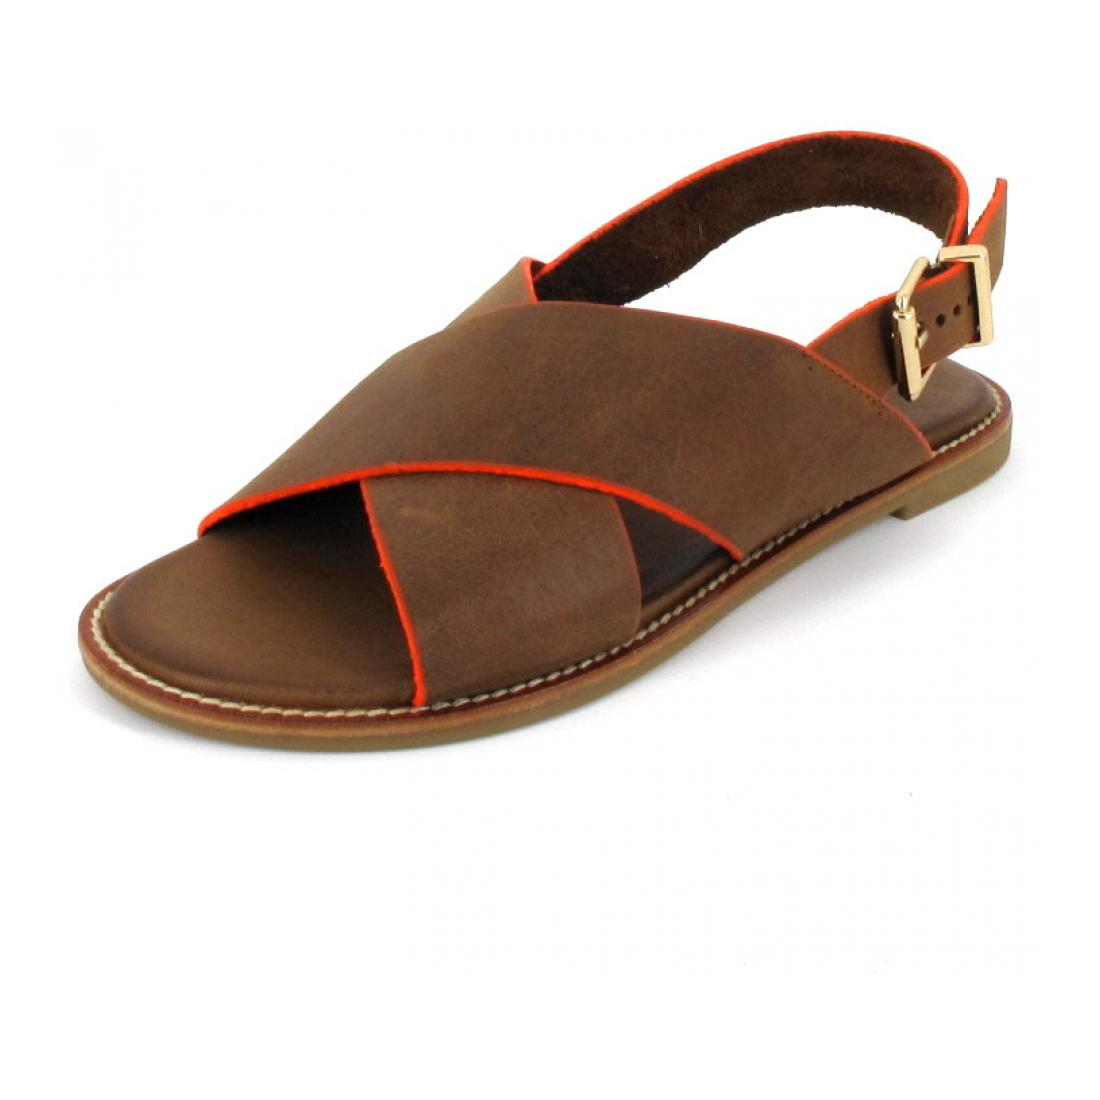 Inuovo Sandale Sandals Tan-Neon Orange